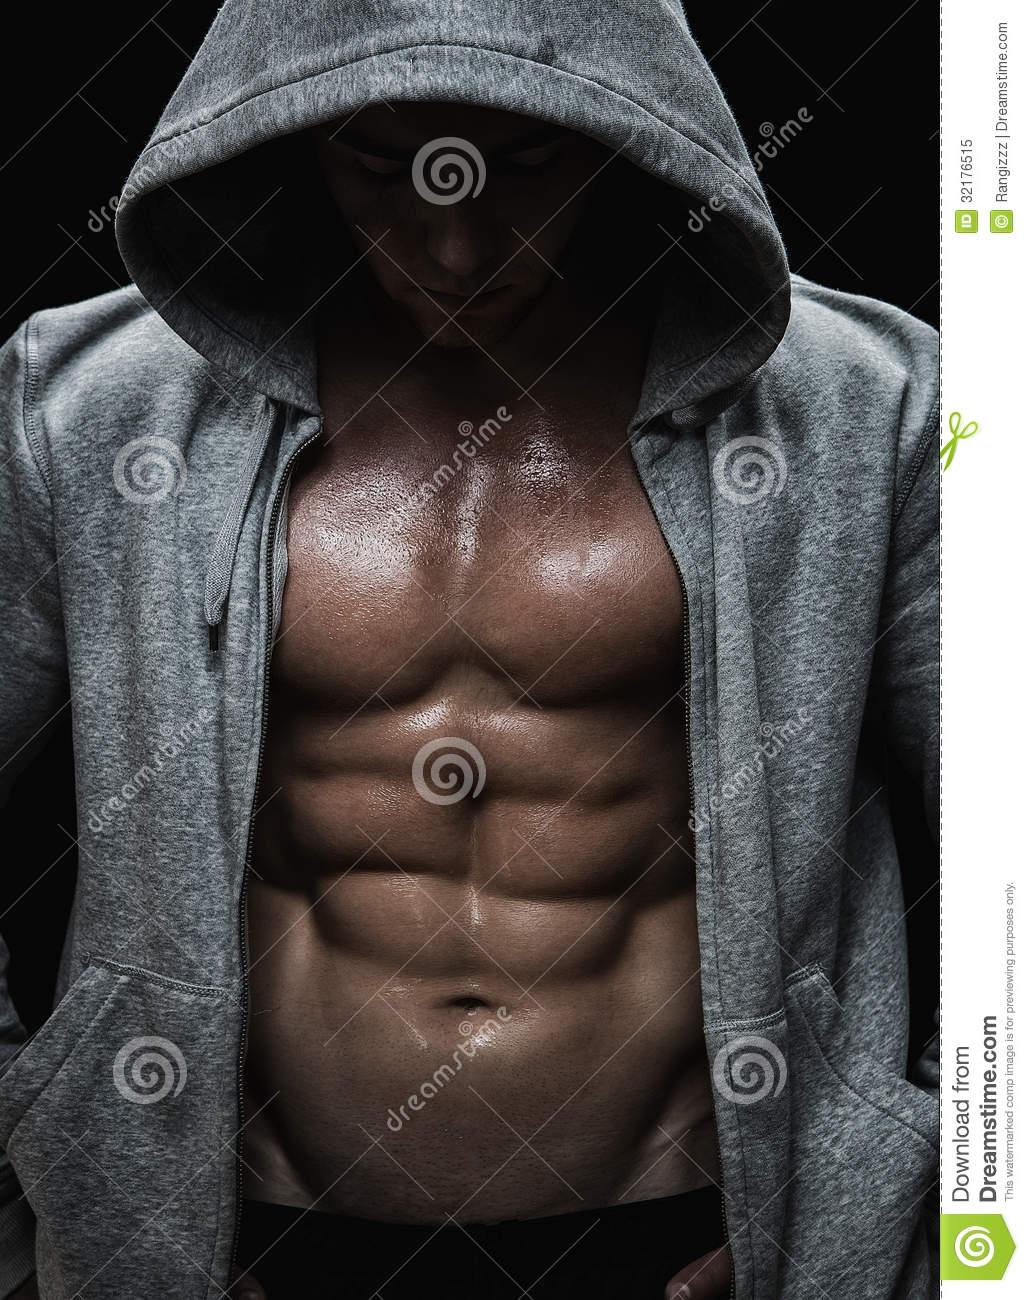 Close up of muscular sports man after weights training.